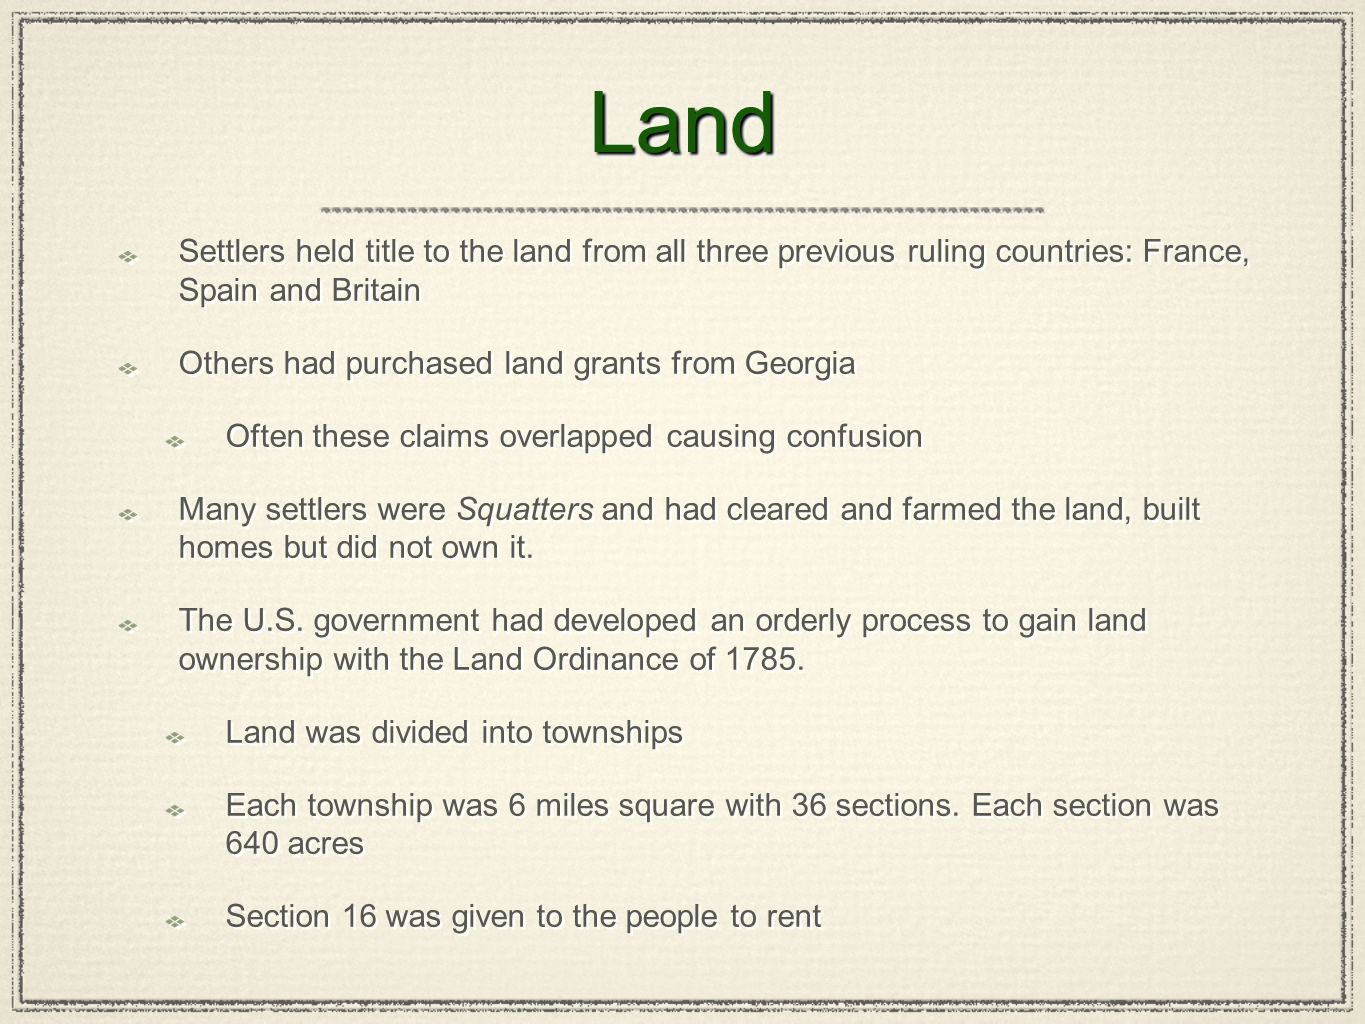 Land Settlers held title to the land from all three previous ruling countries: France, Spain and Britain.